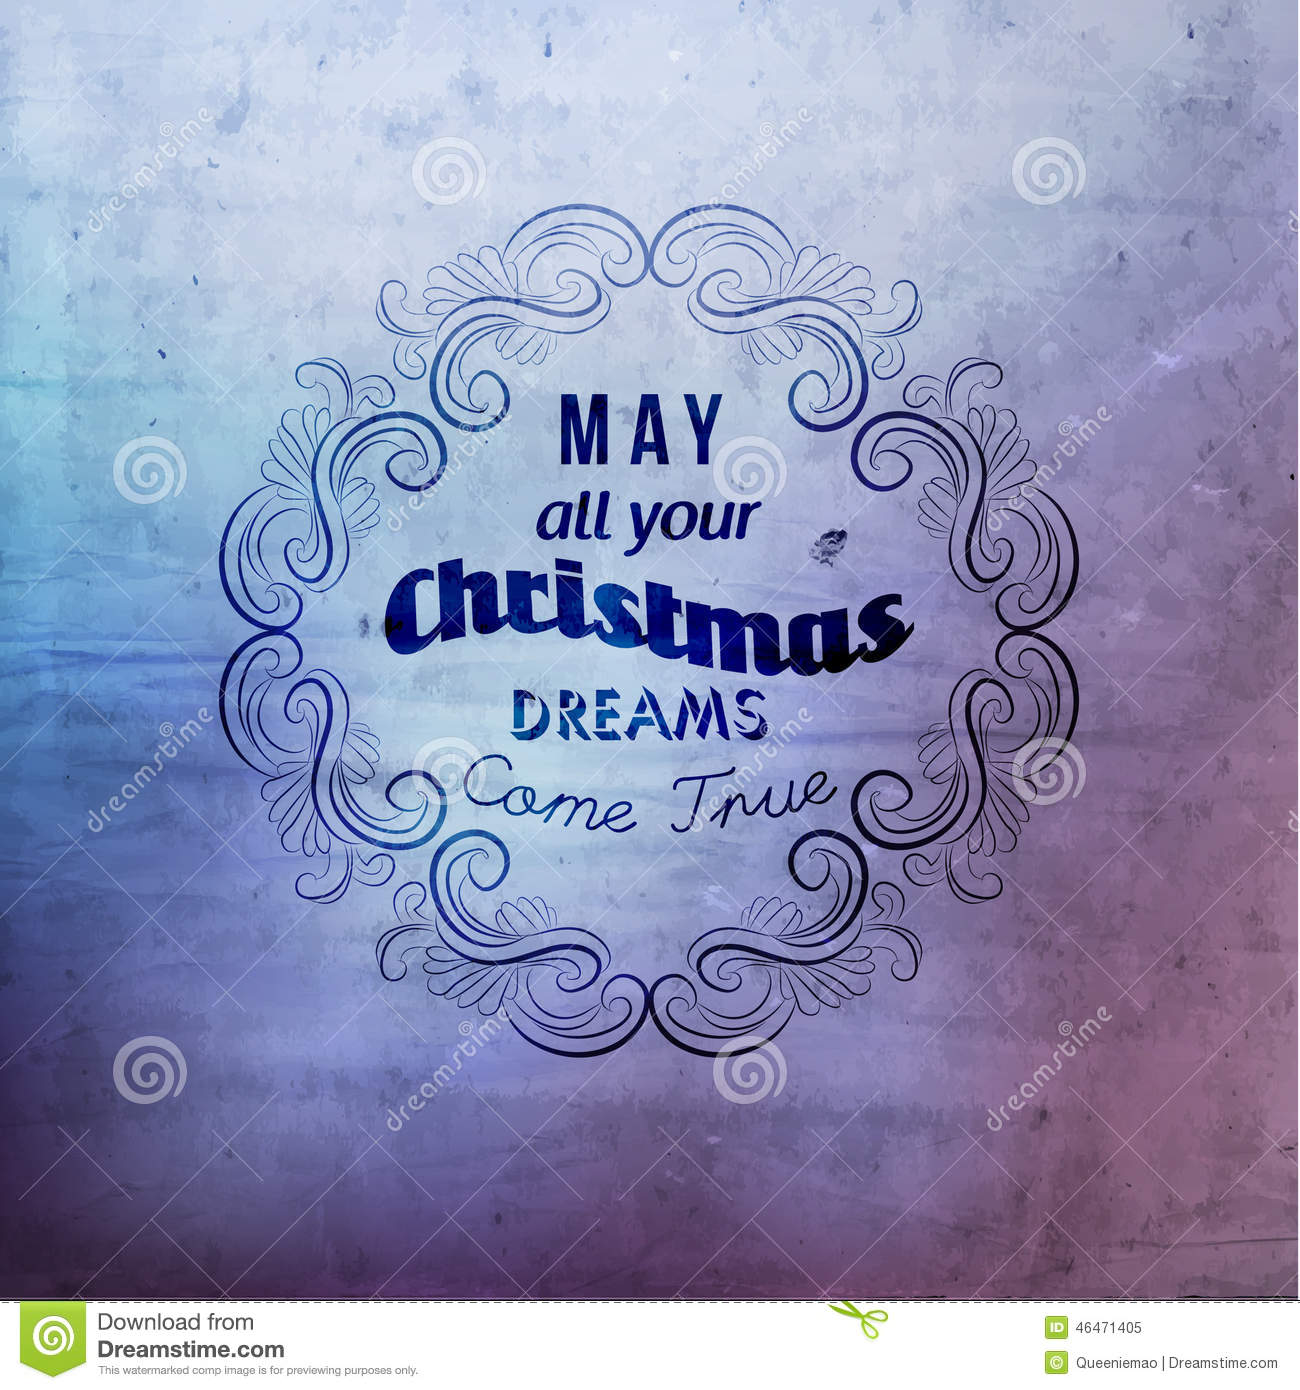 Merry christmas season greetings vector design stock illustration download merry christmas season greetings vector design stock illustration illustration of celebrate layout m4hsunfo